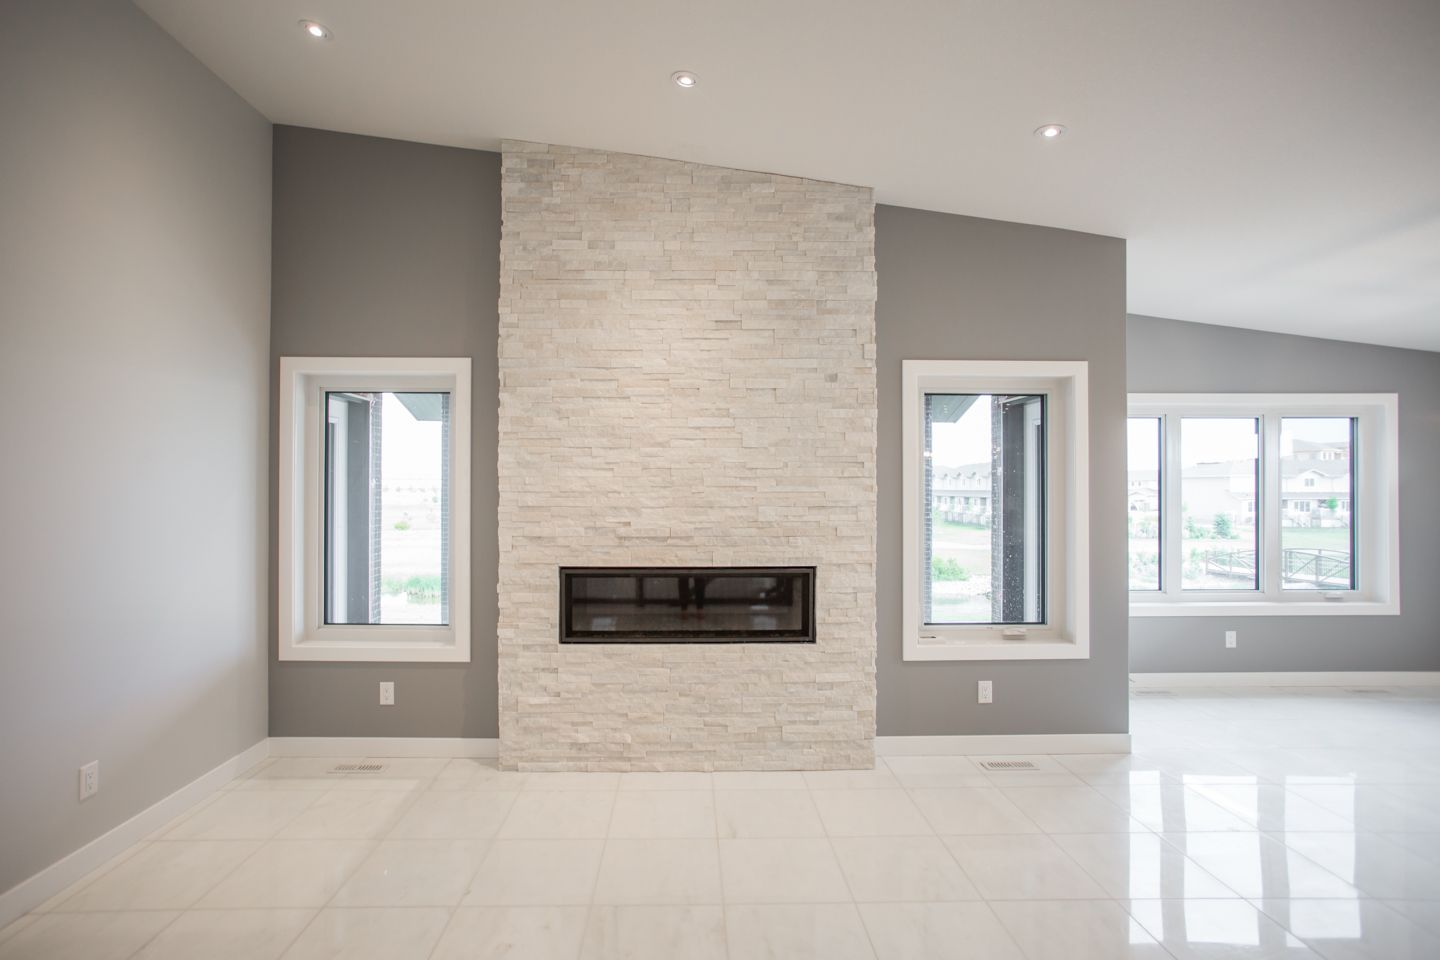 Clean Looking Fireplace With White Stone From Floor To Ceiling